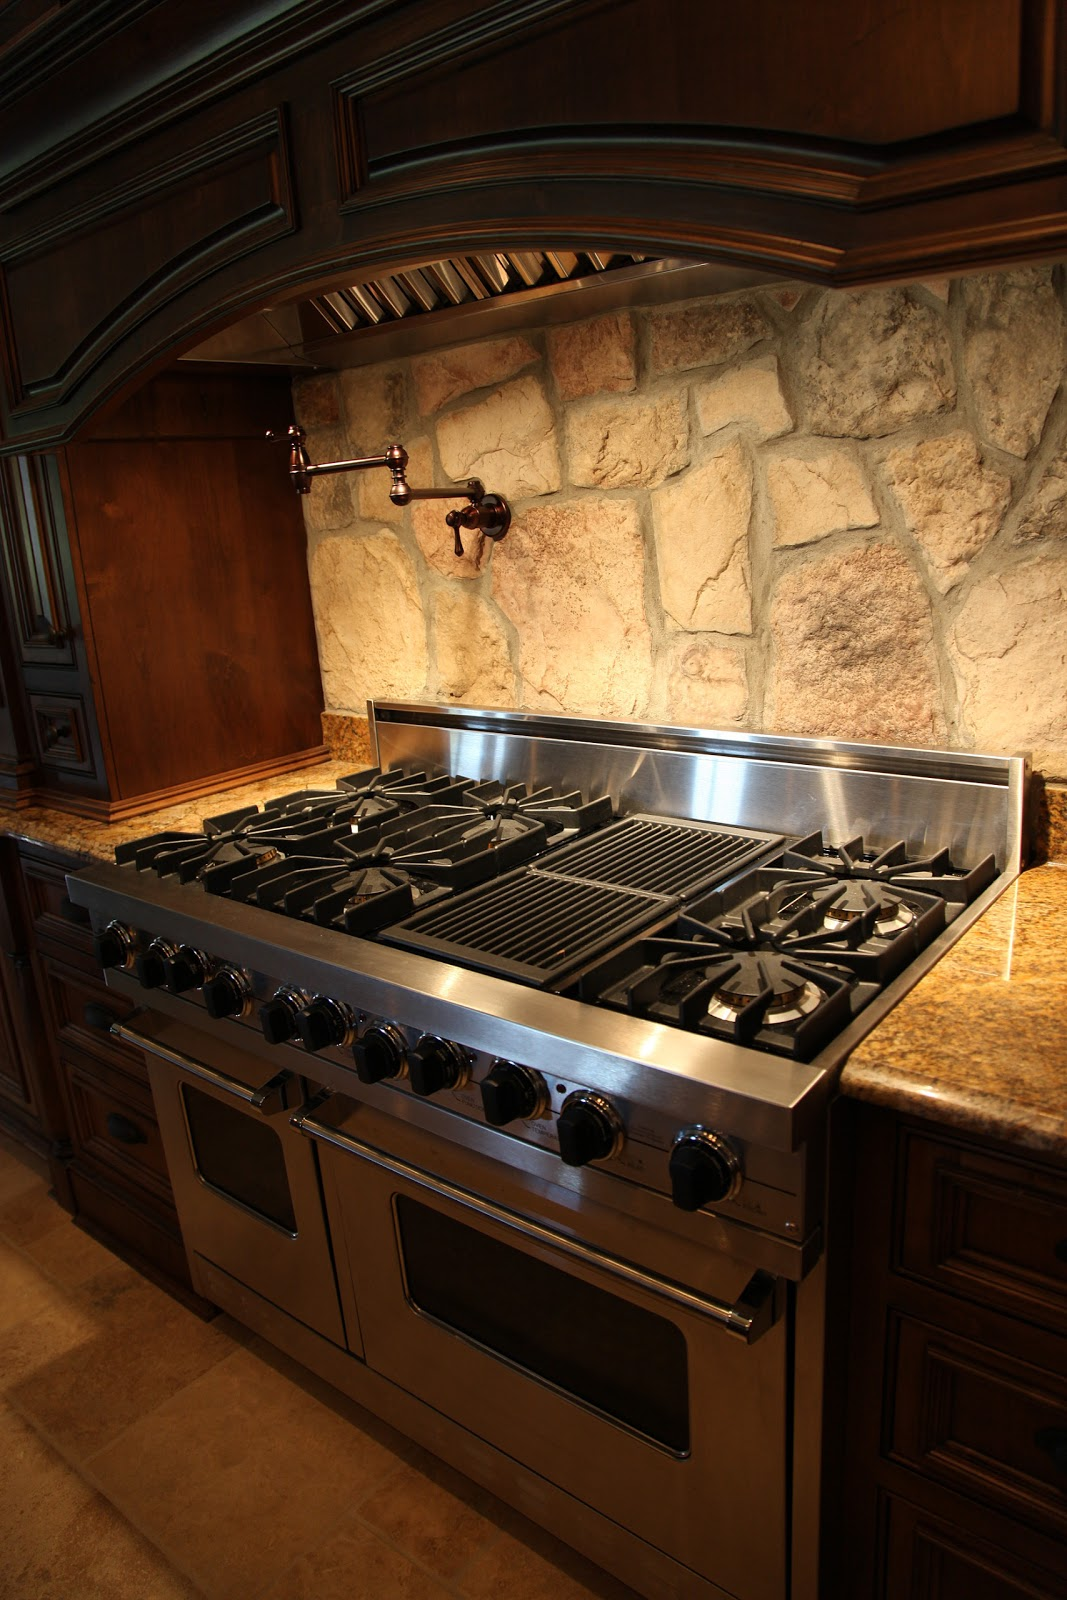 Discount High End Appliances ~ Keats manufacturing co and the high end appliance